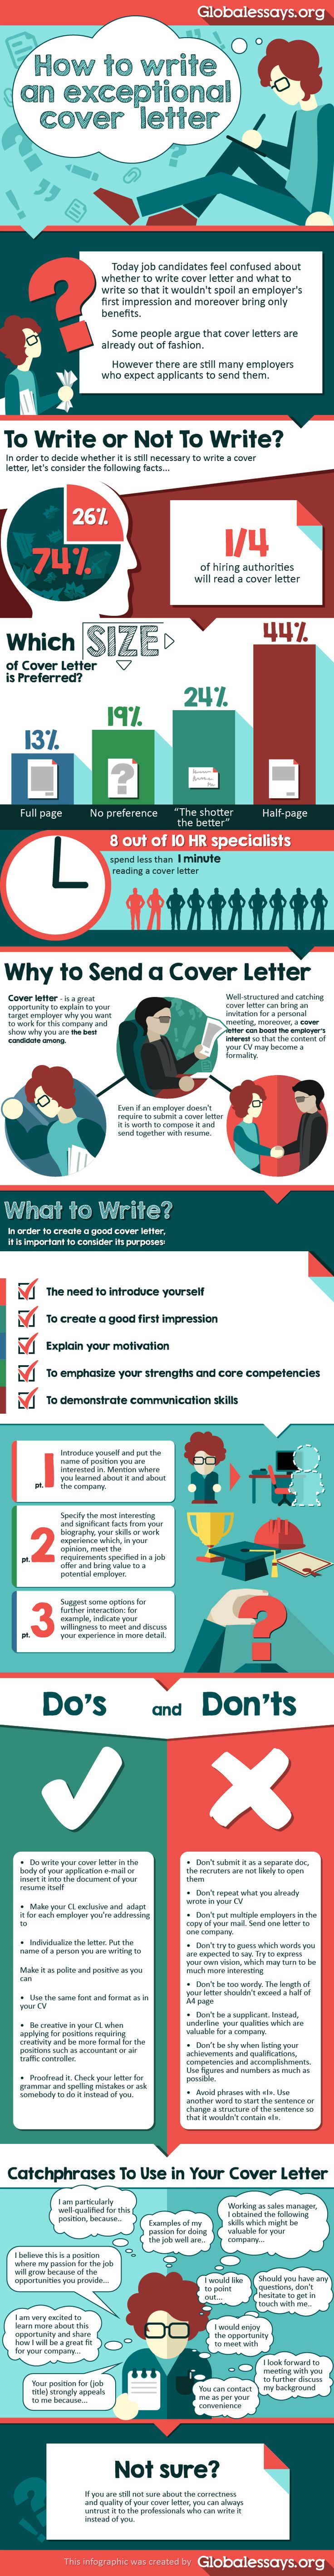 tips to write an exceptional cover letter tipsographic - Resume Cover Letter Ideas